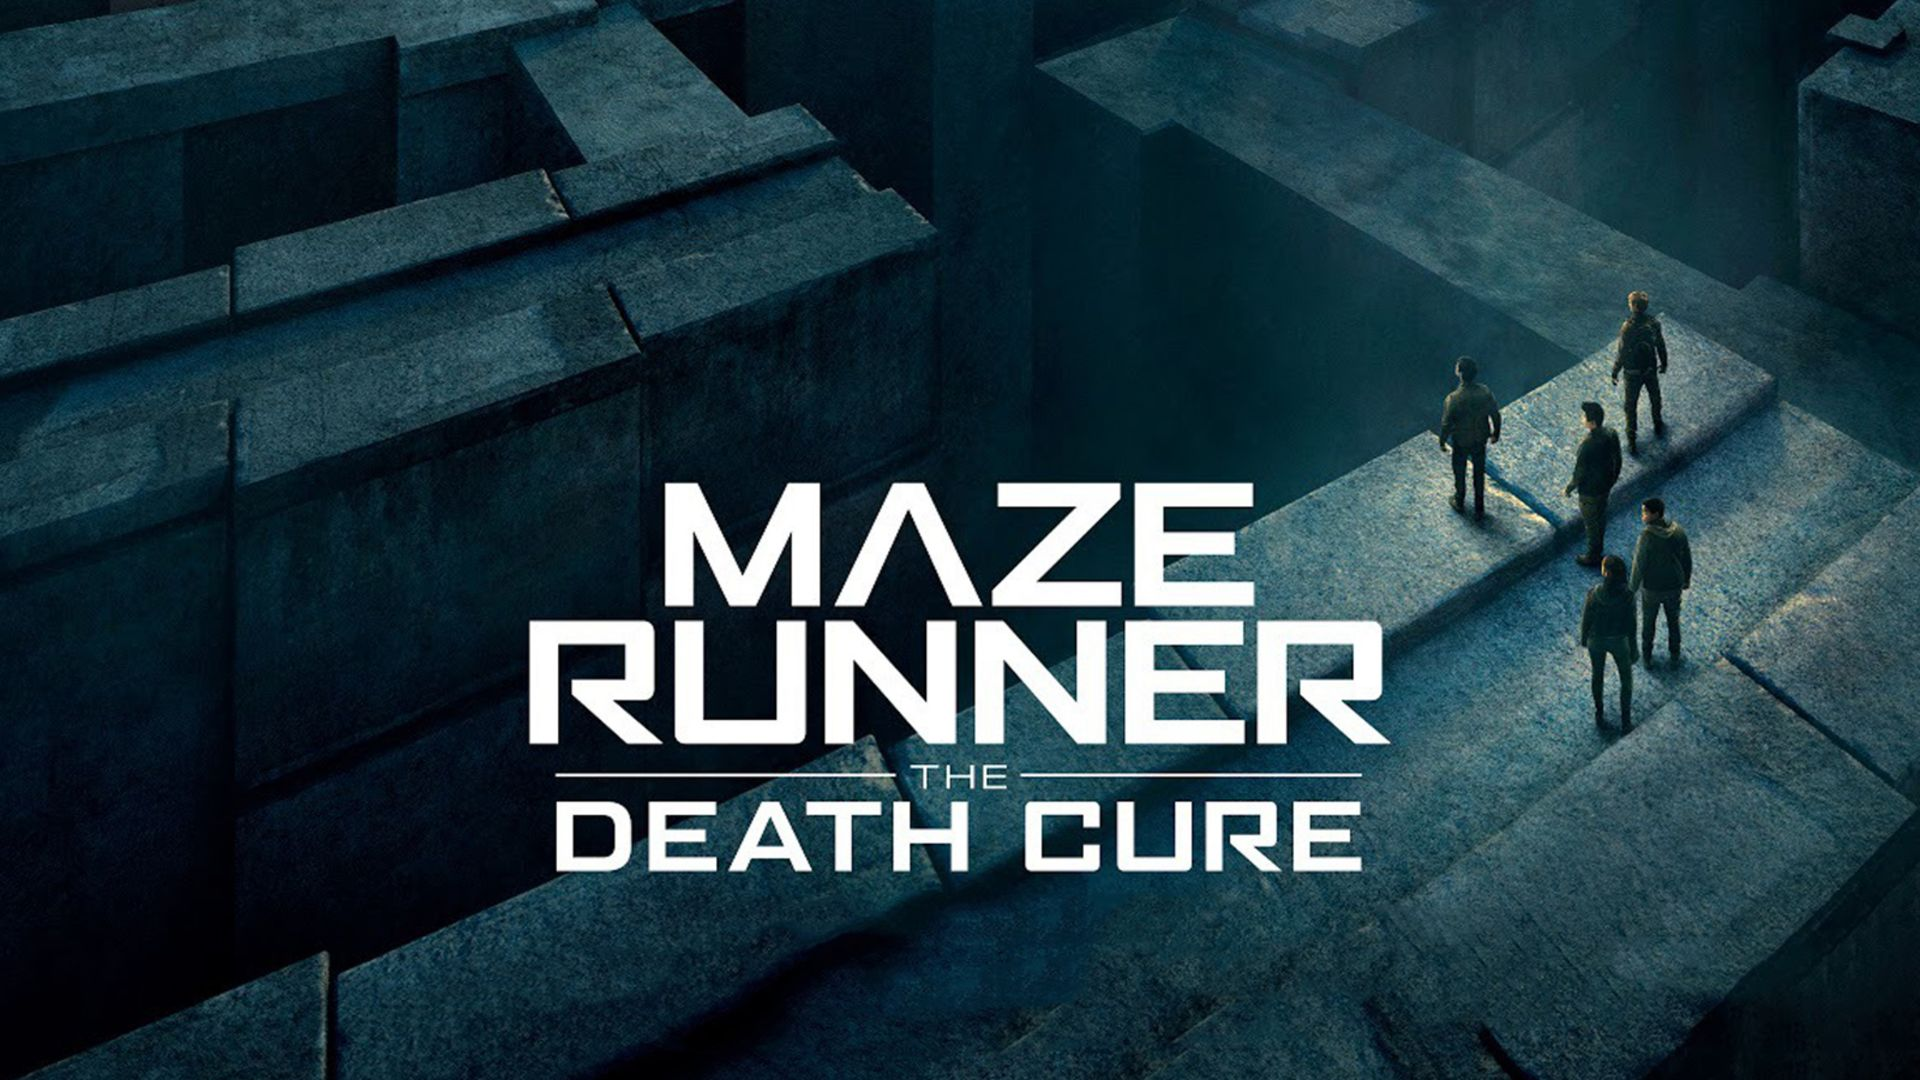 Maze runner death cure movie poster